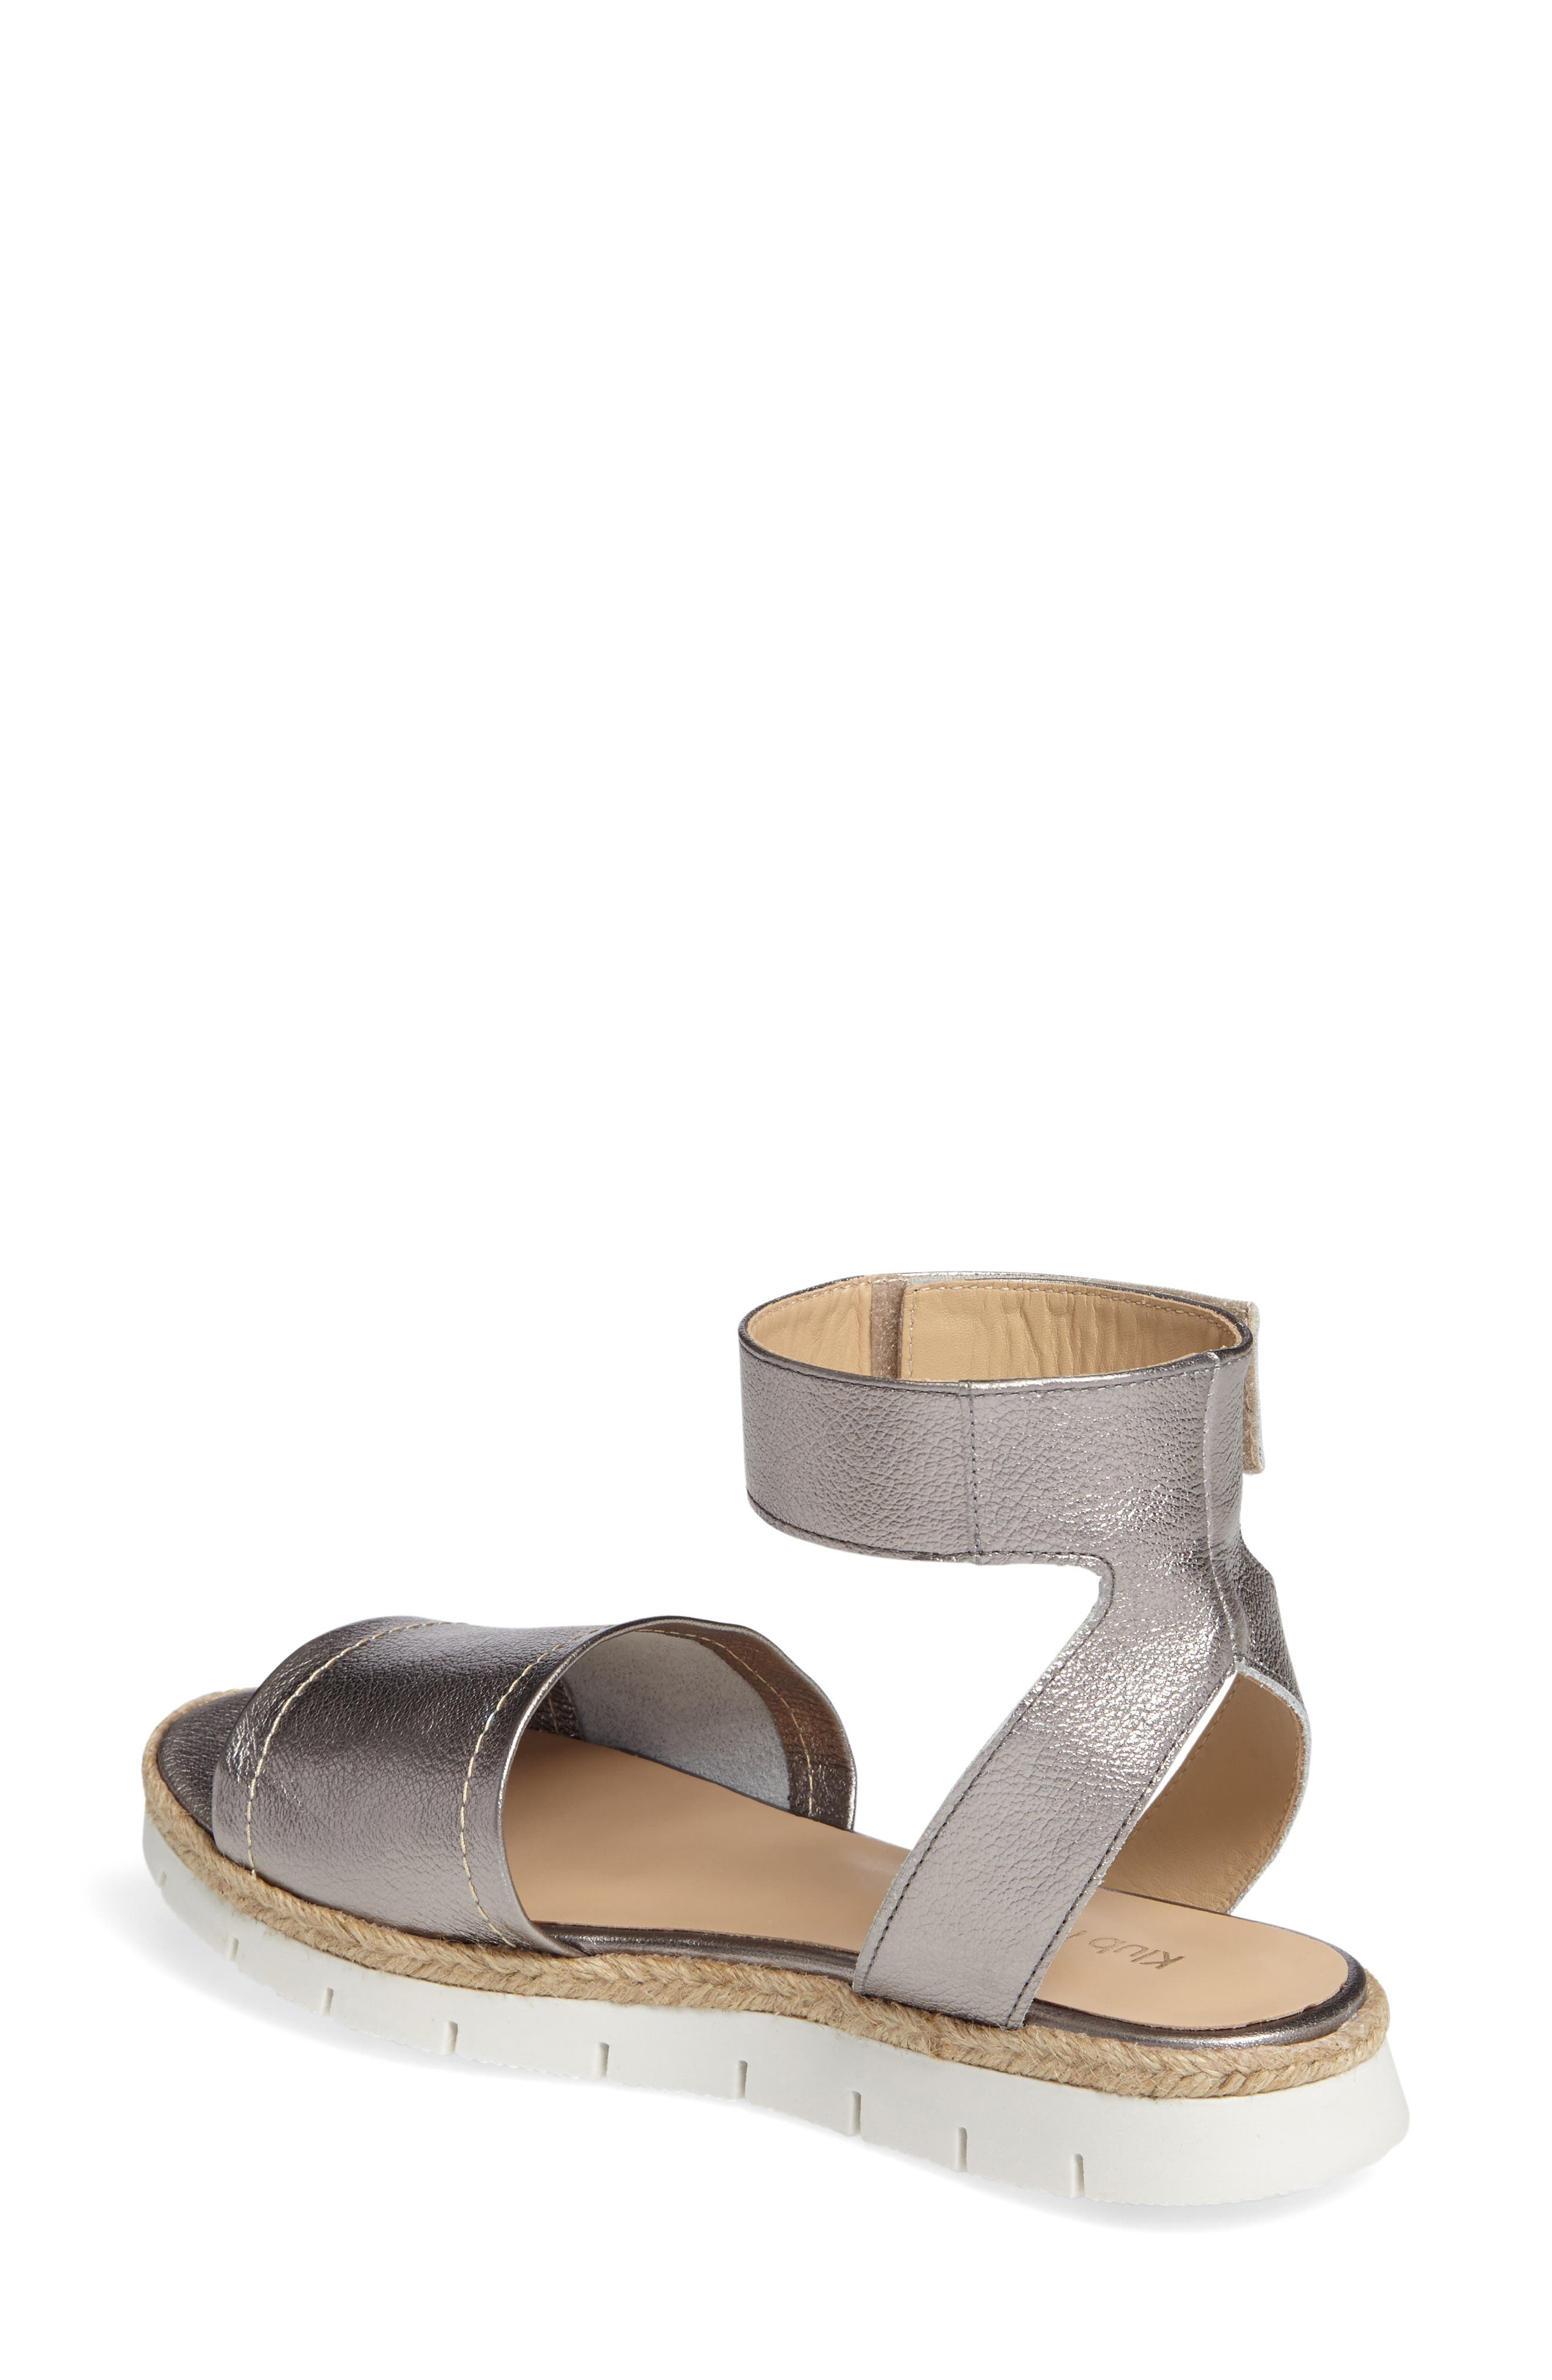 Cleo Platform Sandal,                             Alternate thumbnail 2, color,                             021